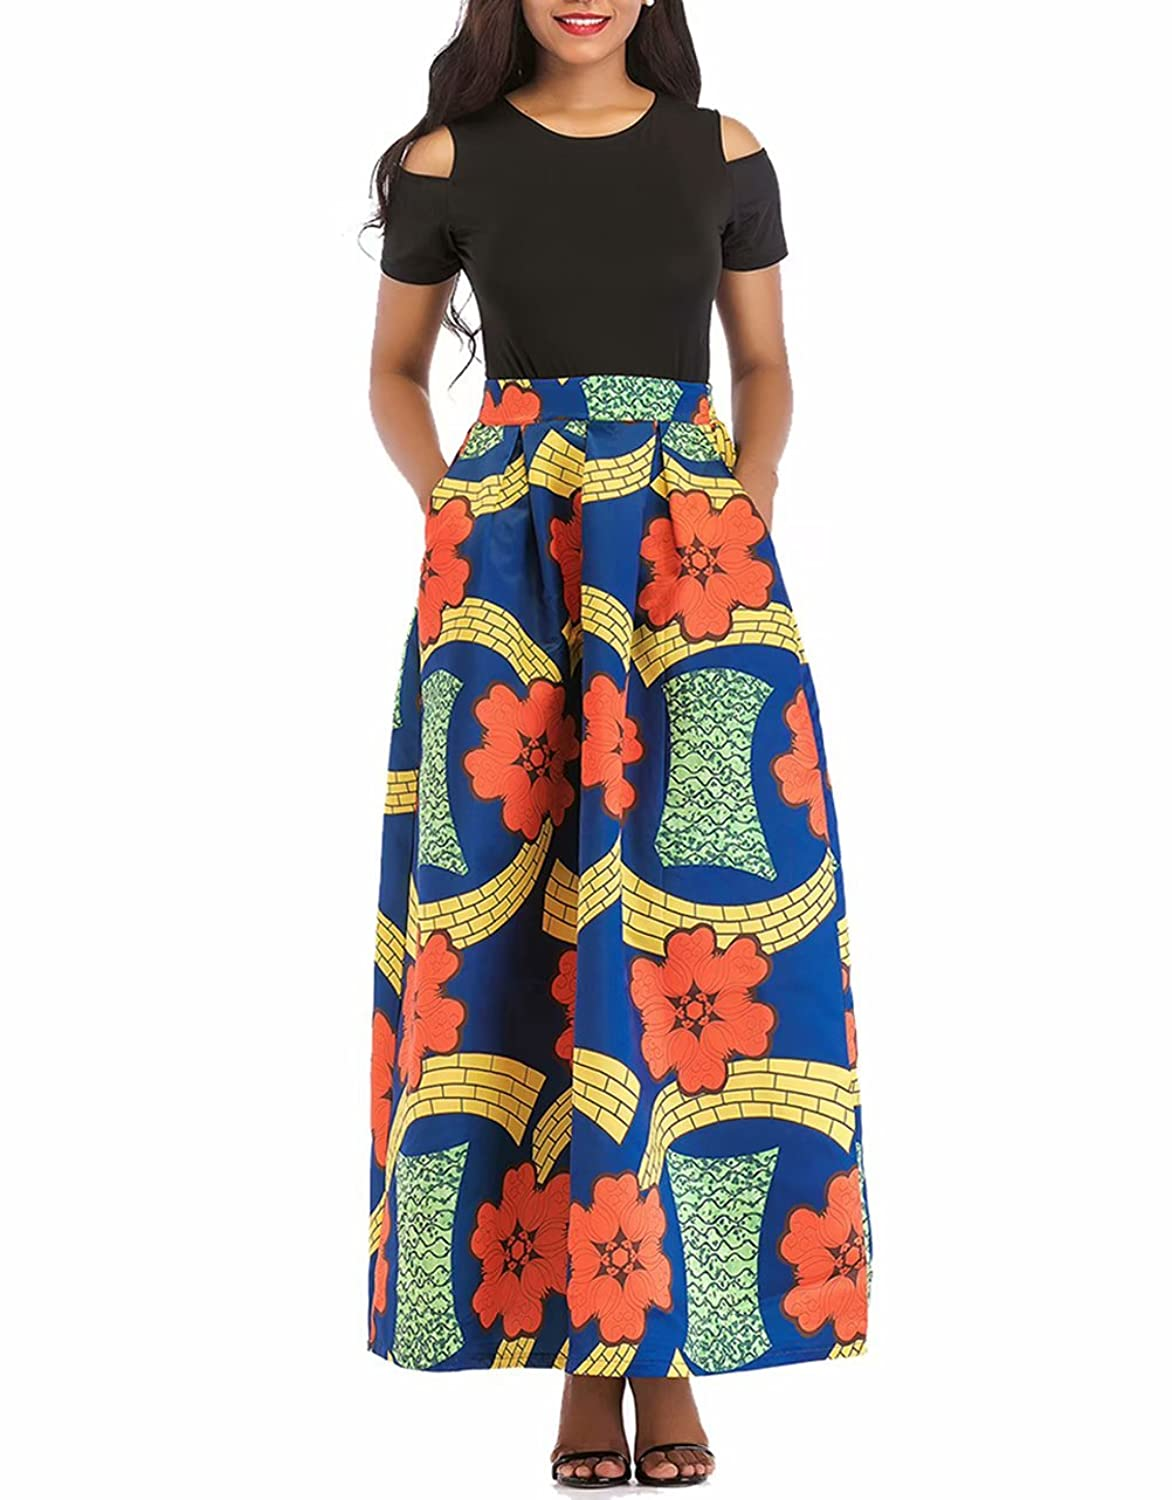 209ff0ed ... Shoulder,Short Sleeve/Long Sleeve,Black Tops,Graphic African Floral  Print,Elastic Waistband,With Pockets,A Line Long Skirt,2 Piece Dress Set  Outfit